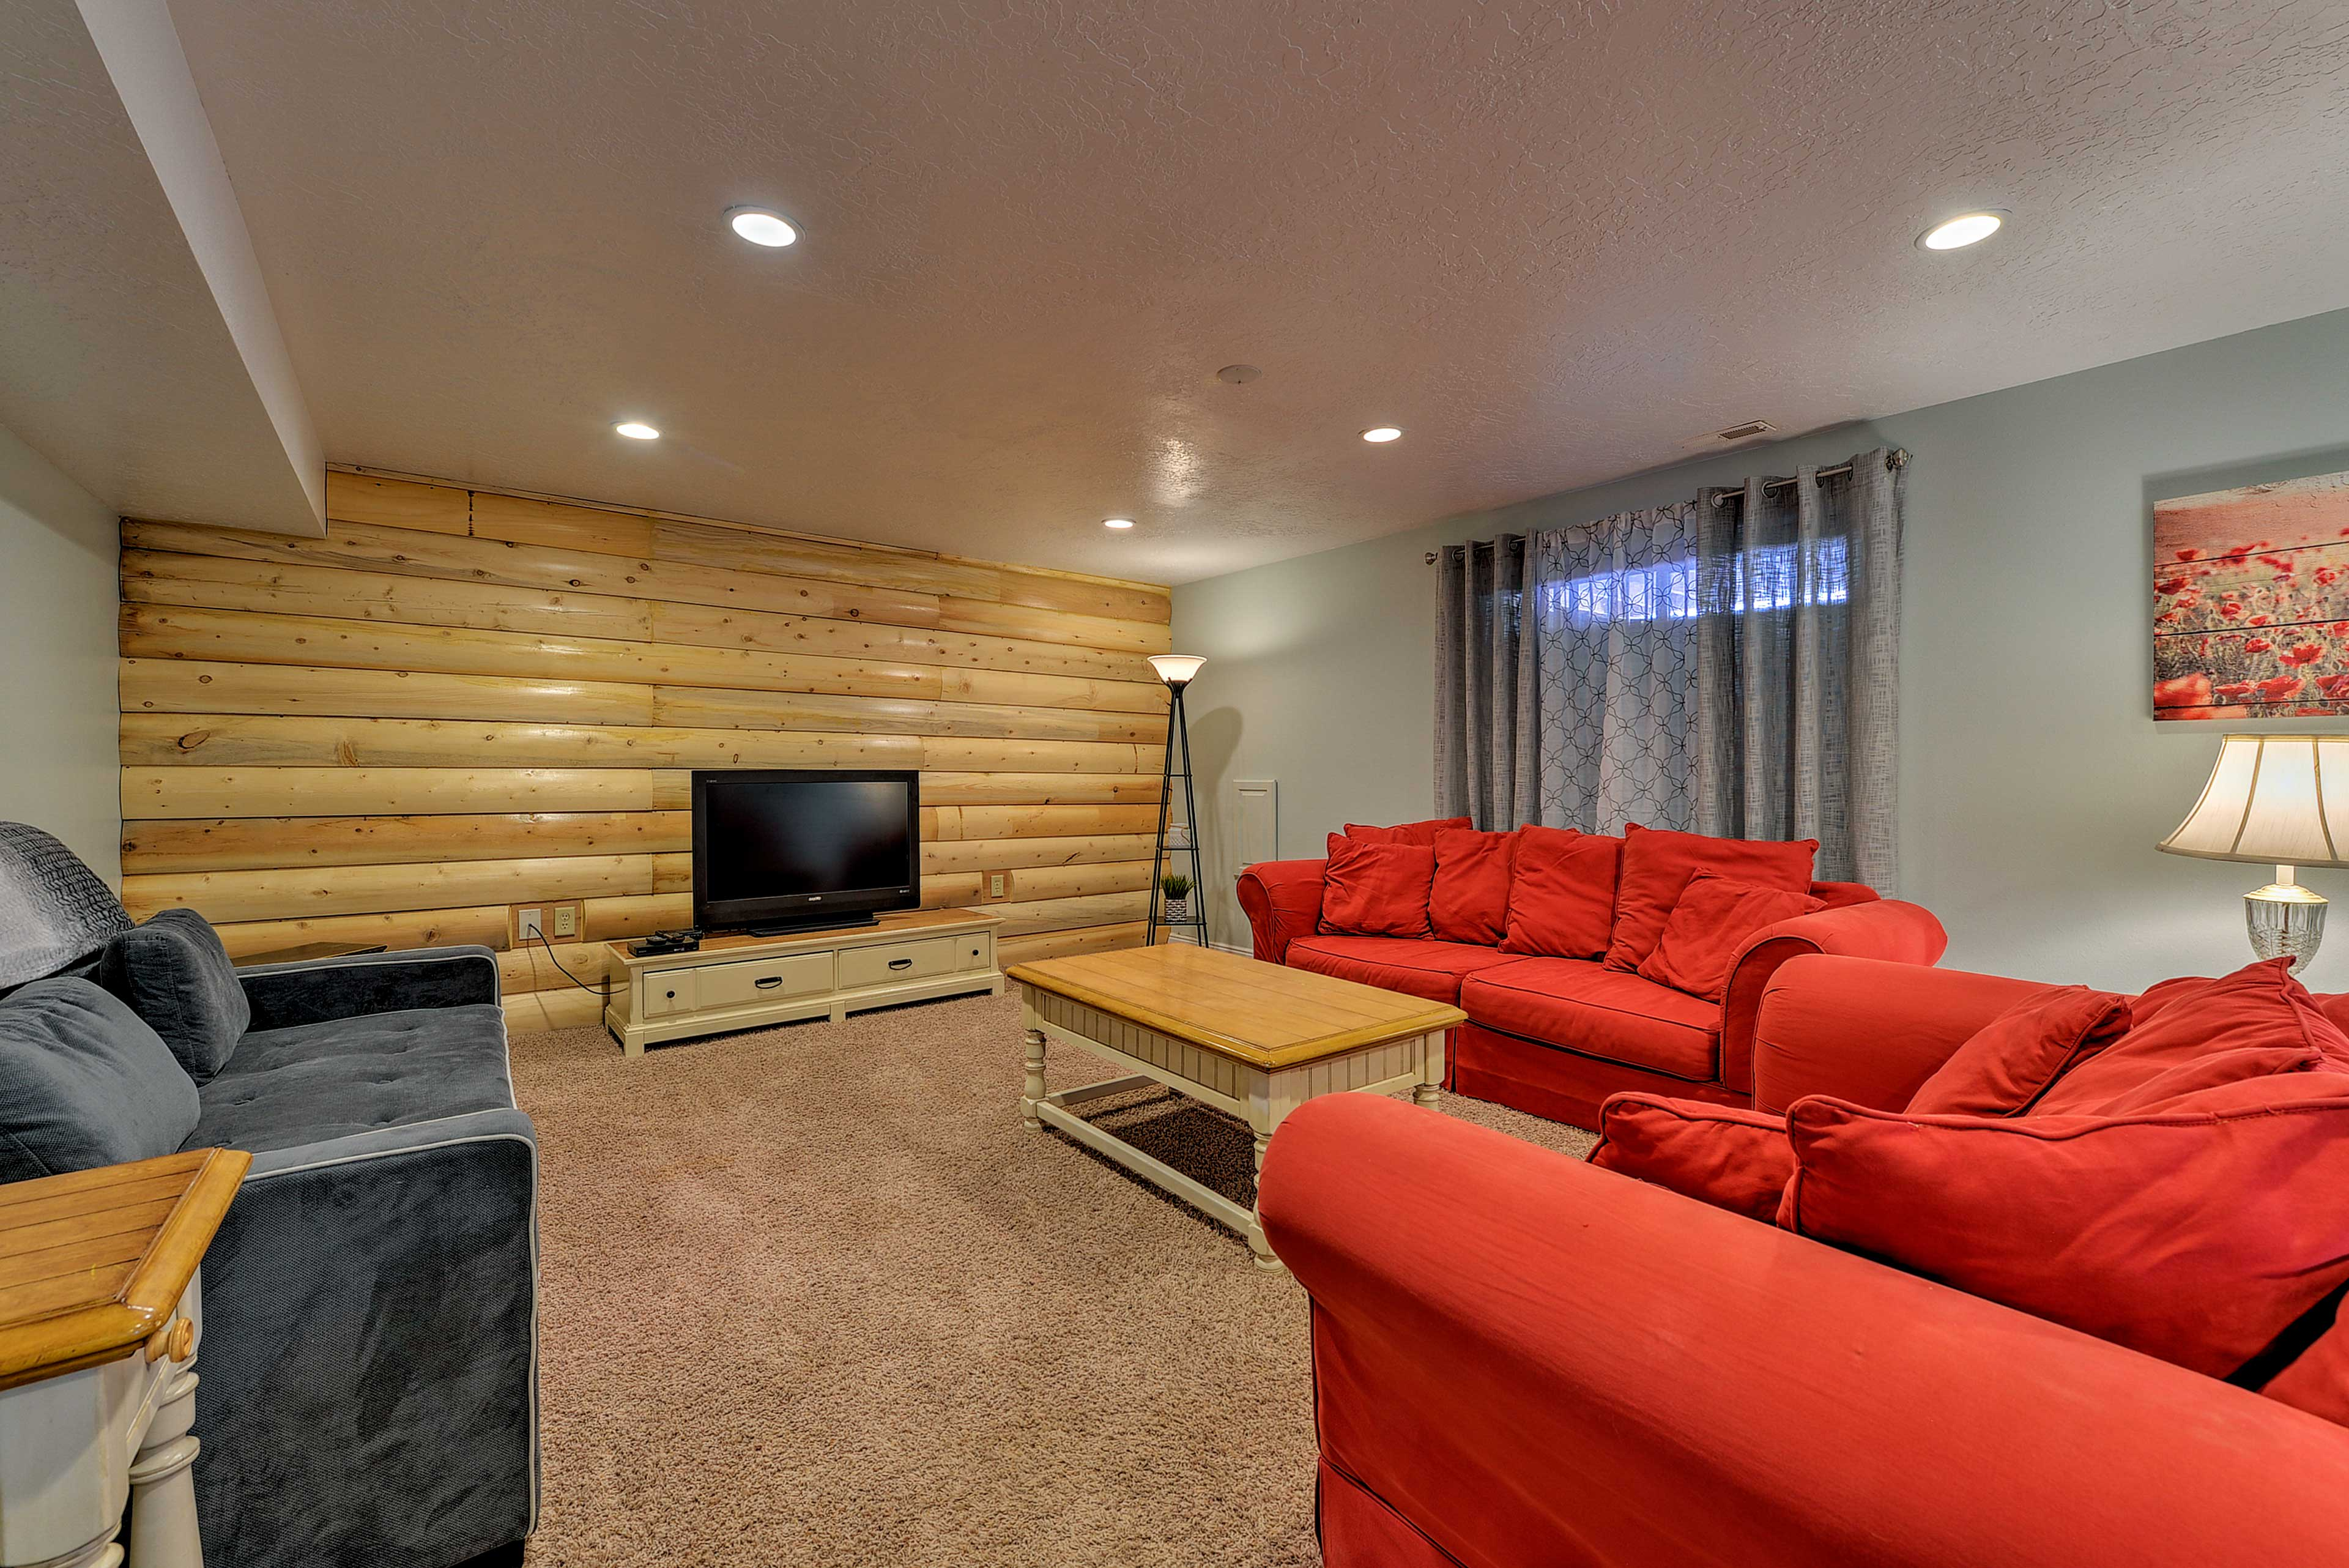 The exposed wood log wall is a beautiful touch.